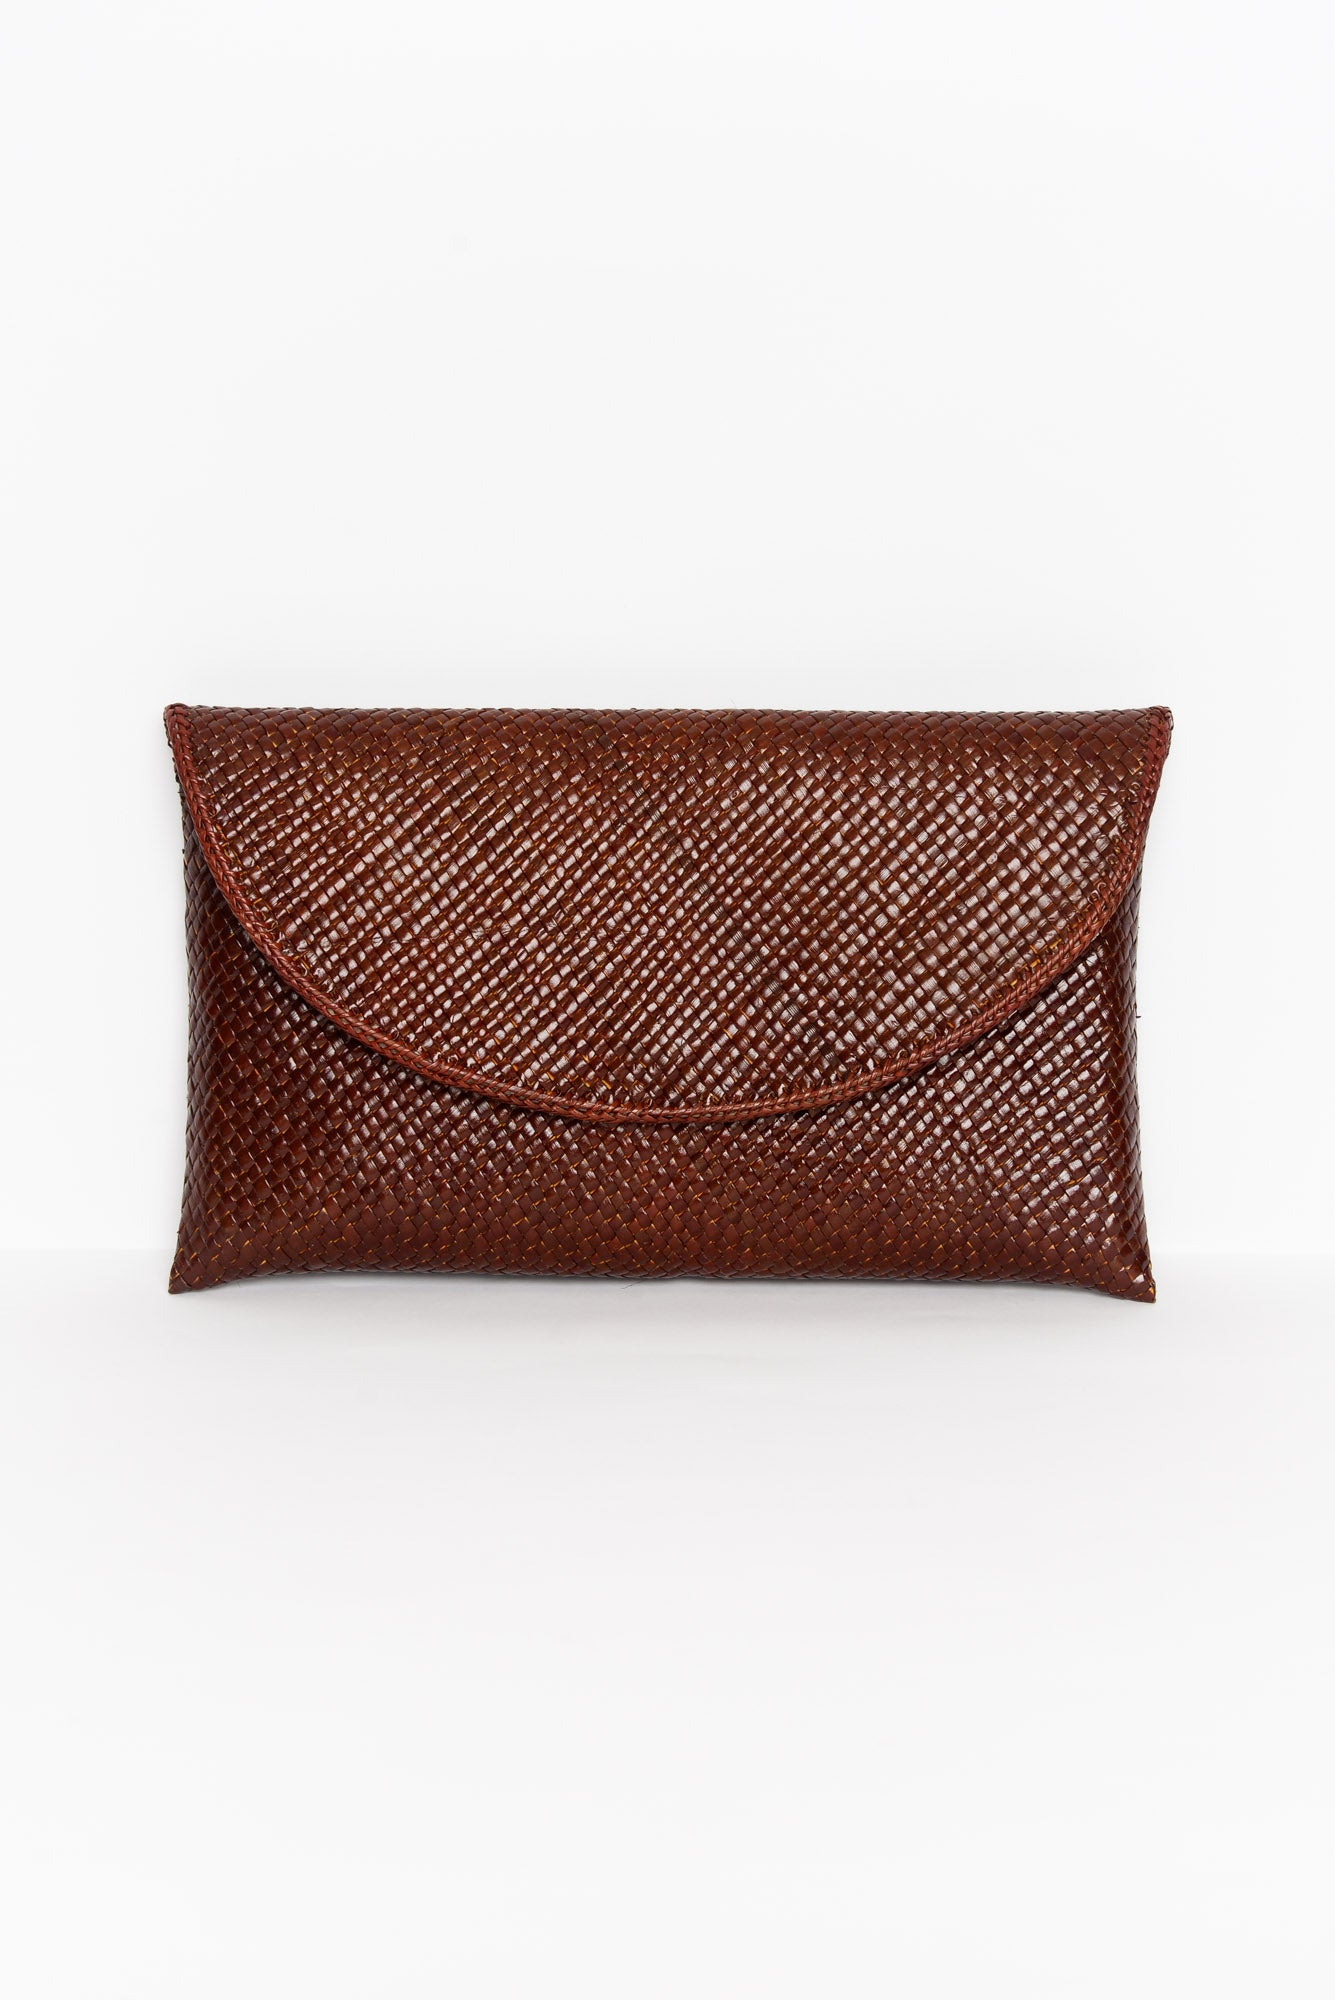 Ubud Brown Woven Clutch